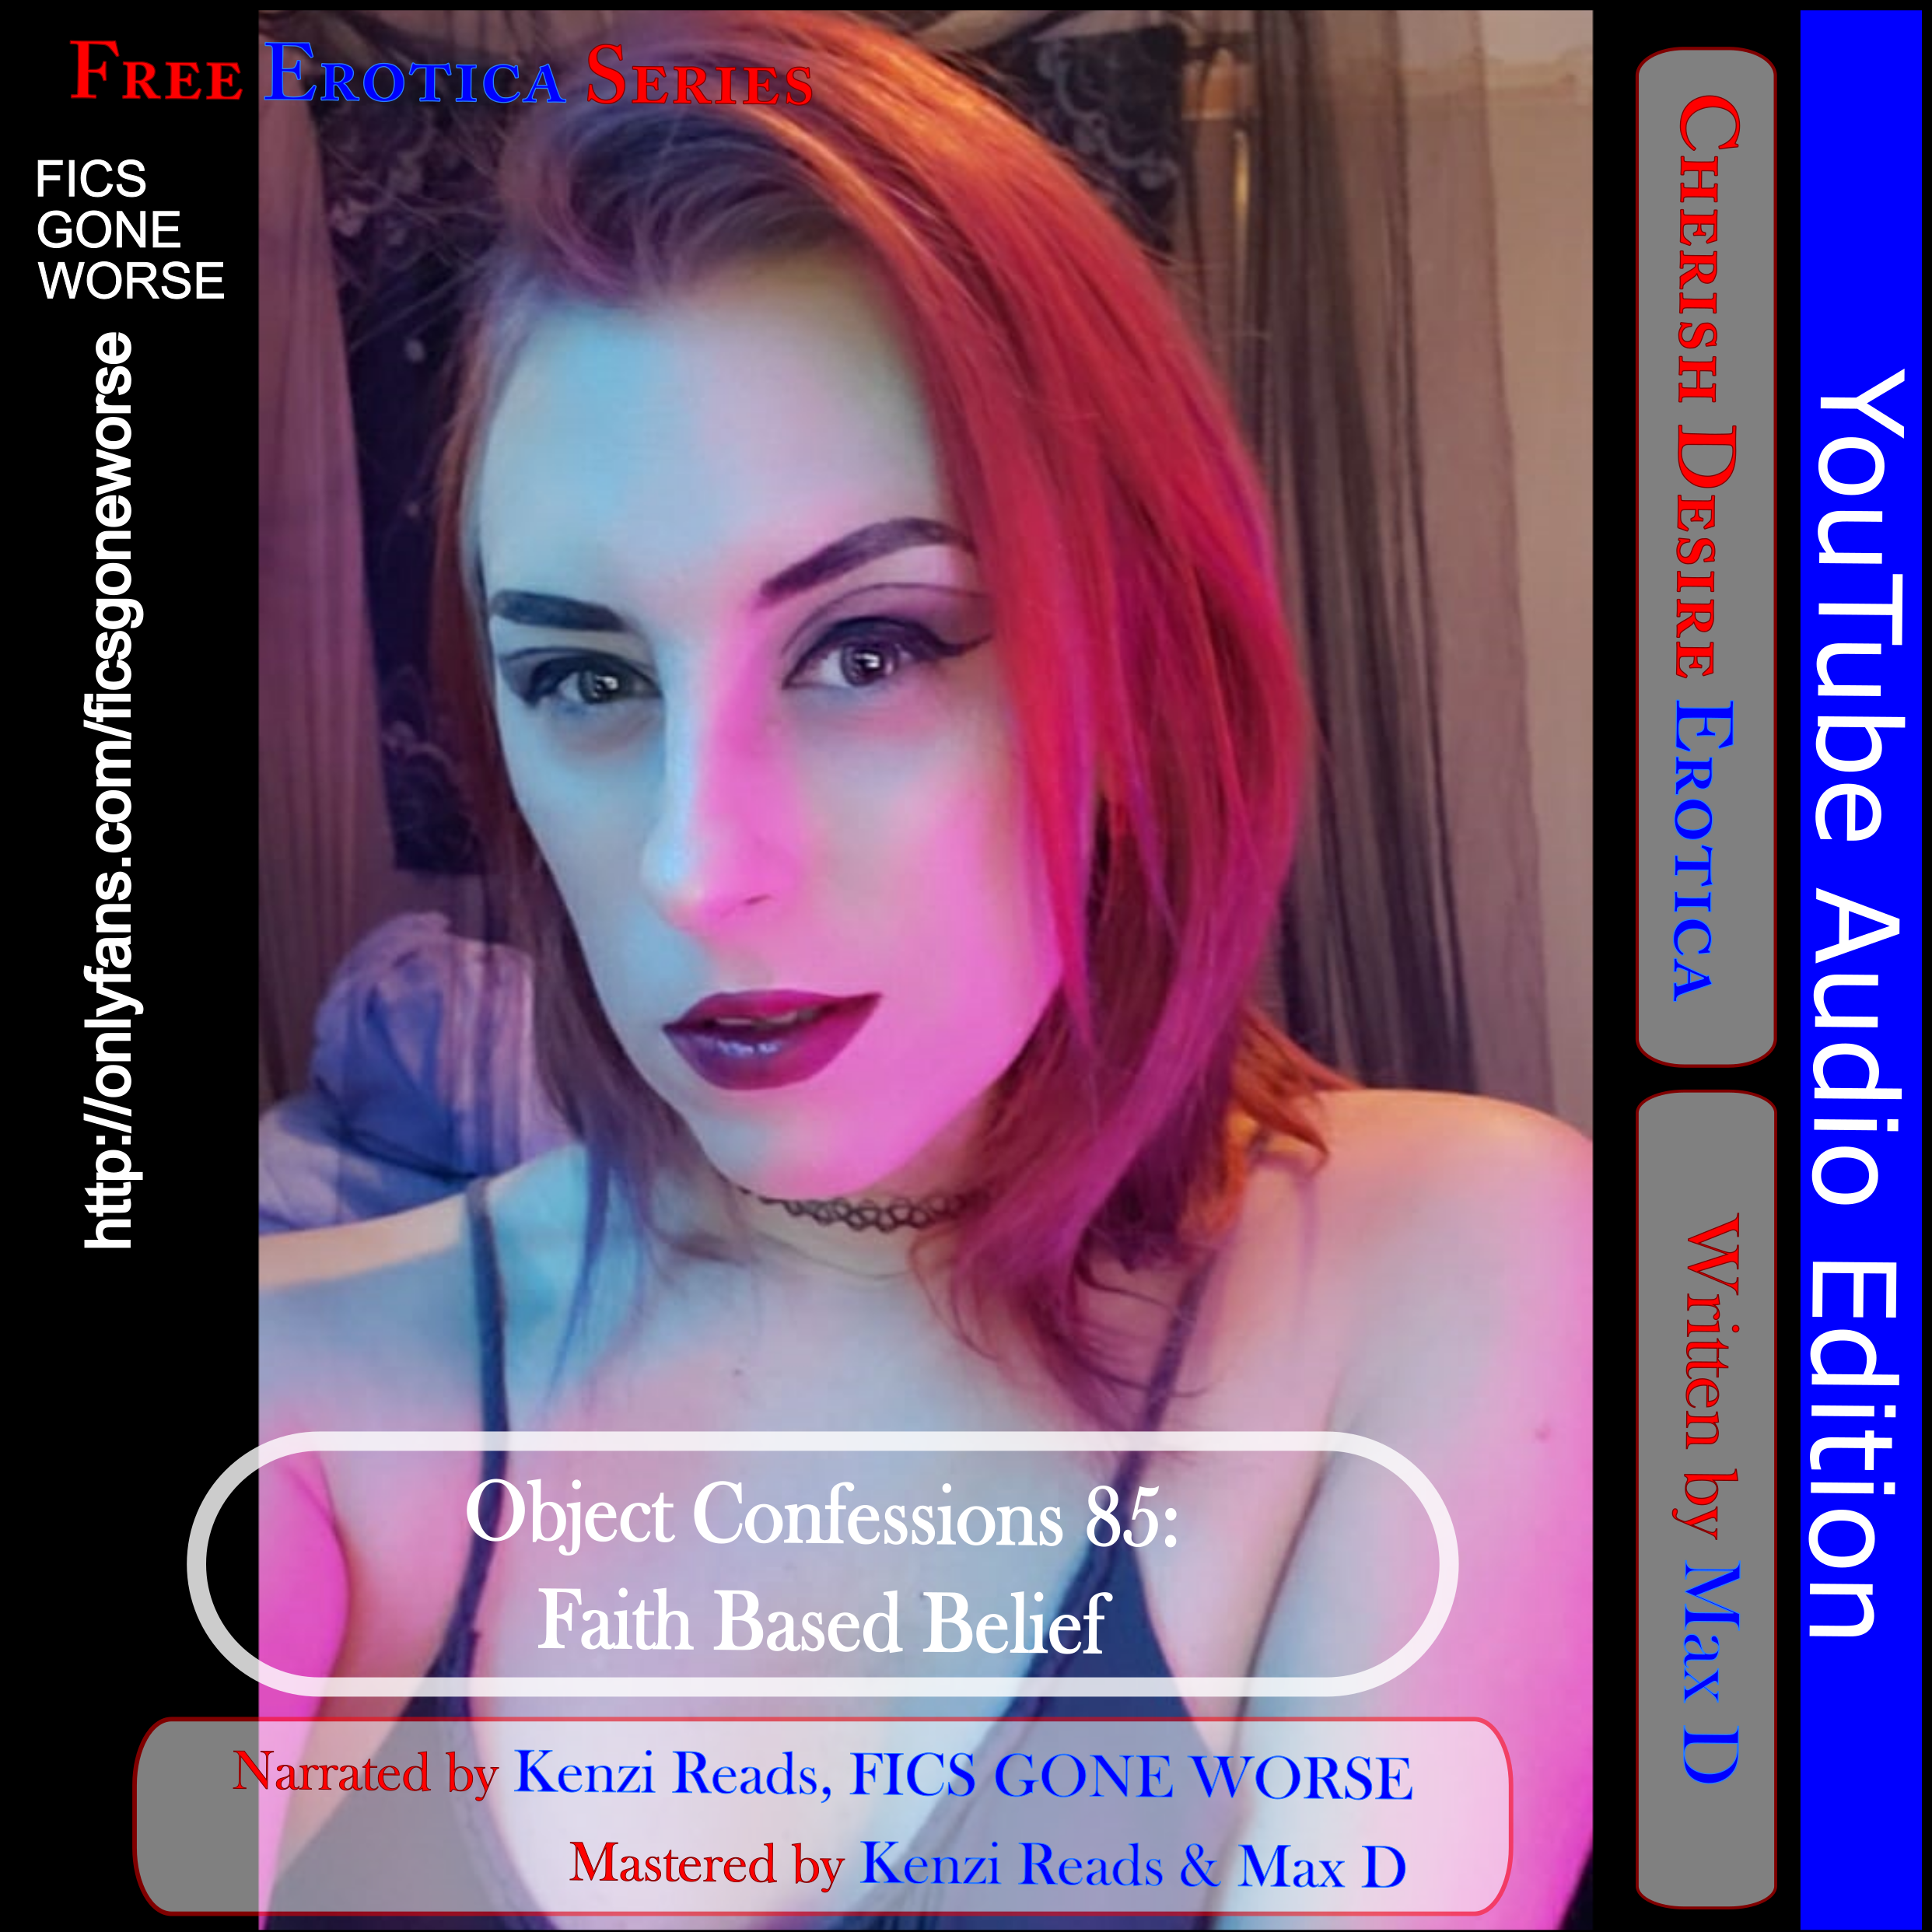 Cherish Desire: Very Dirty Stories YouTube Free Audio Erotica Series: Object Confessions 85: Faith Based Belief React Video with Kenzi Reads of FICS GONE WORSE, Max D, erotica